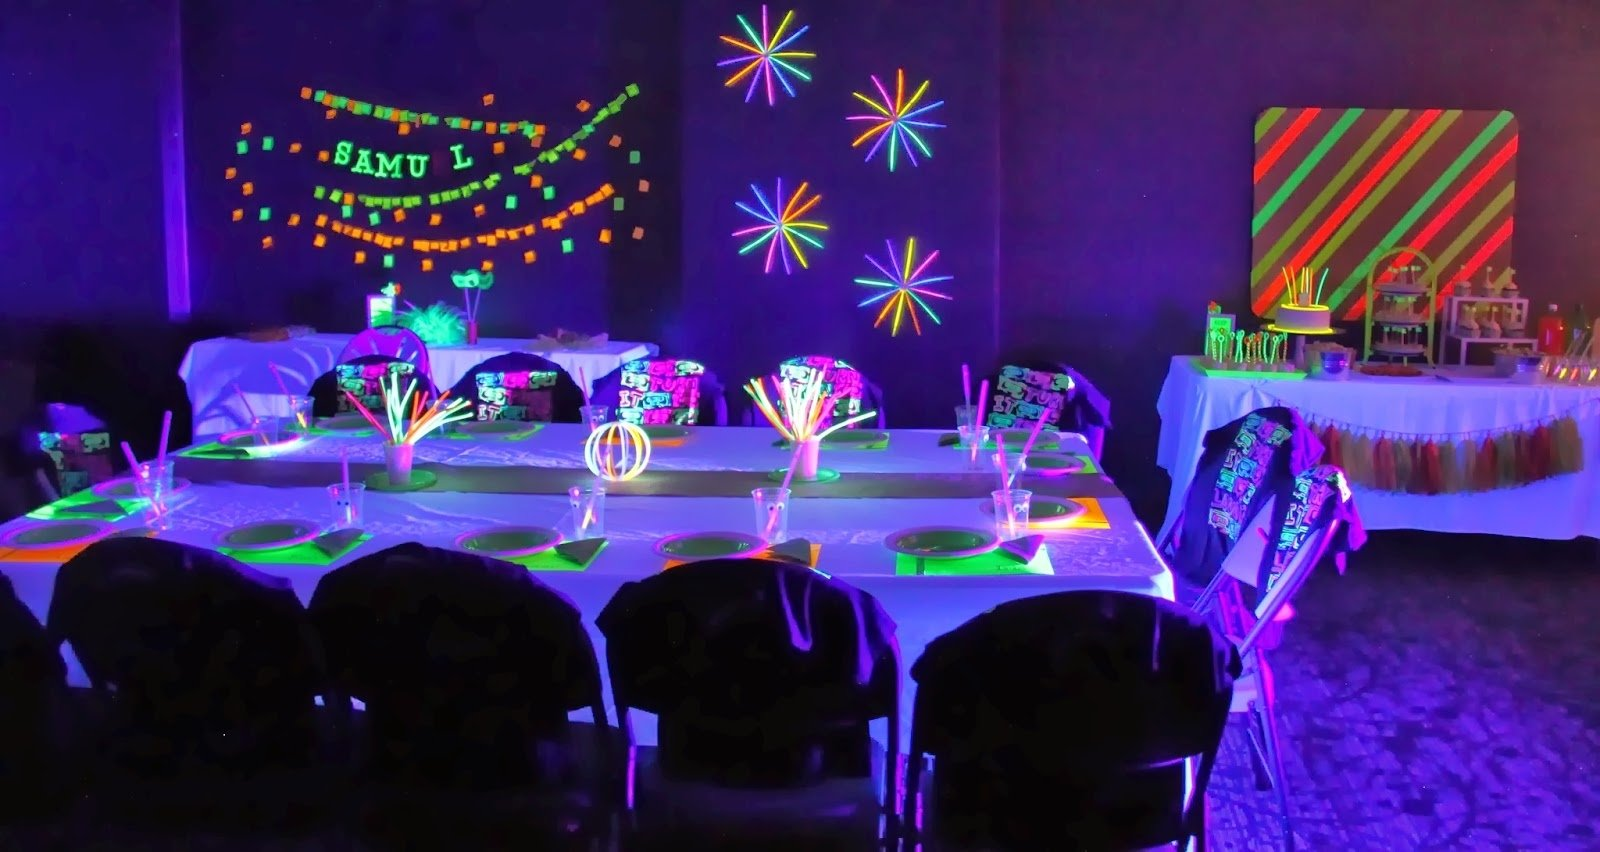 10 Trendy Birthday Party Ideas For A 13 Year Old neon party ideas for 13 year olds parties birthday party ideas 4 2020